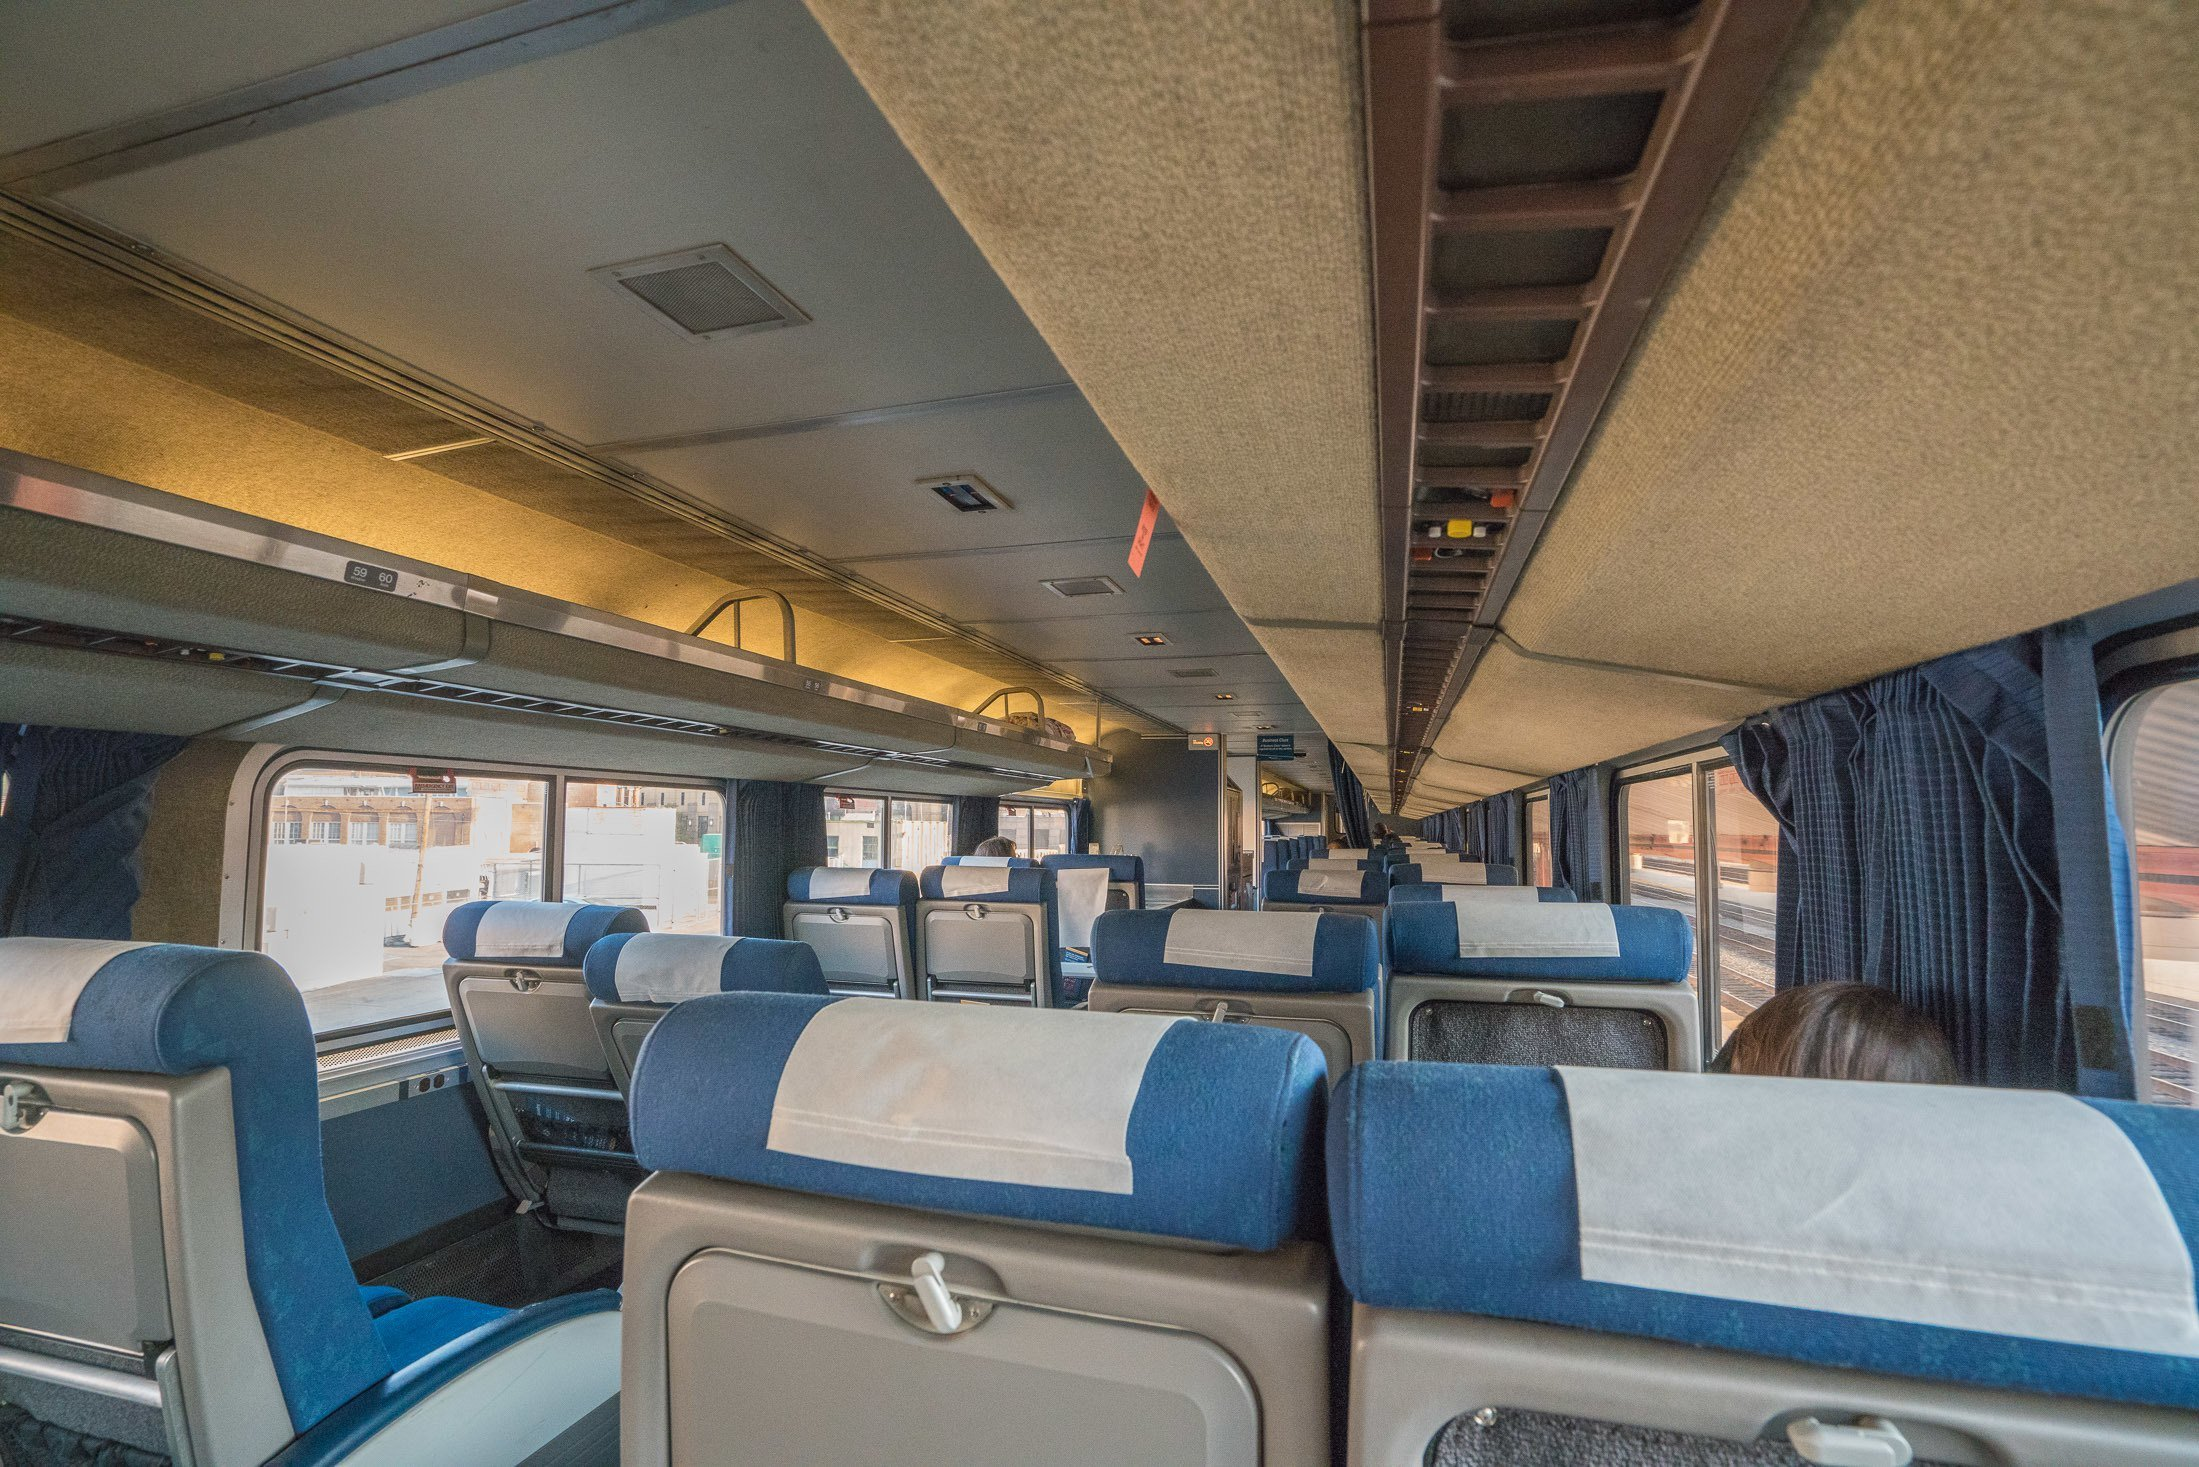 Amtrak business class on the Pacific Surfliner train is worth the upgrade, with a few caveats. See why.